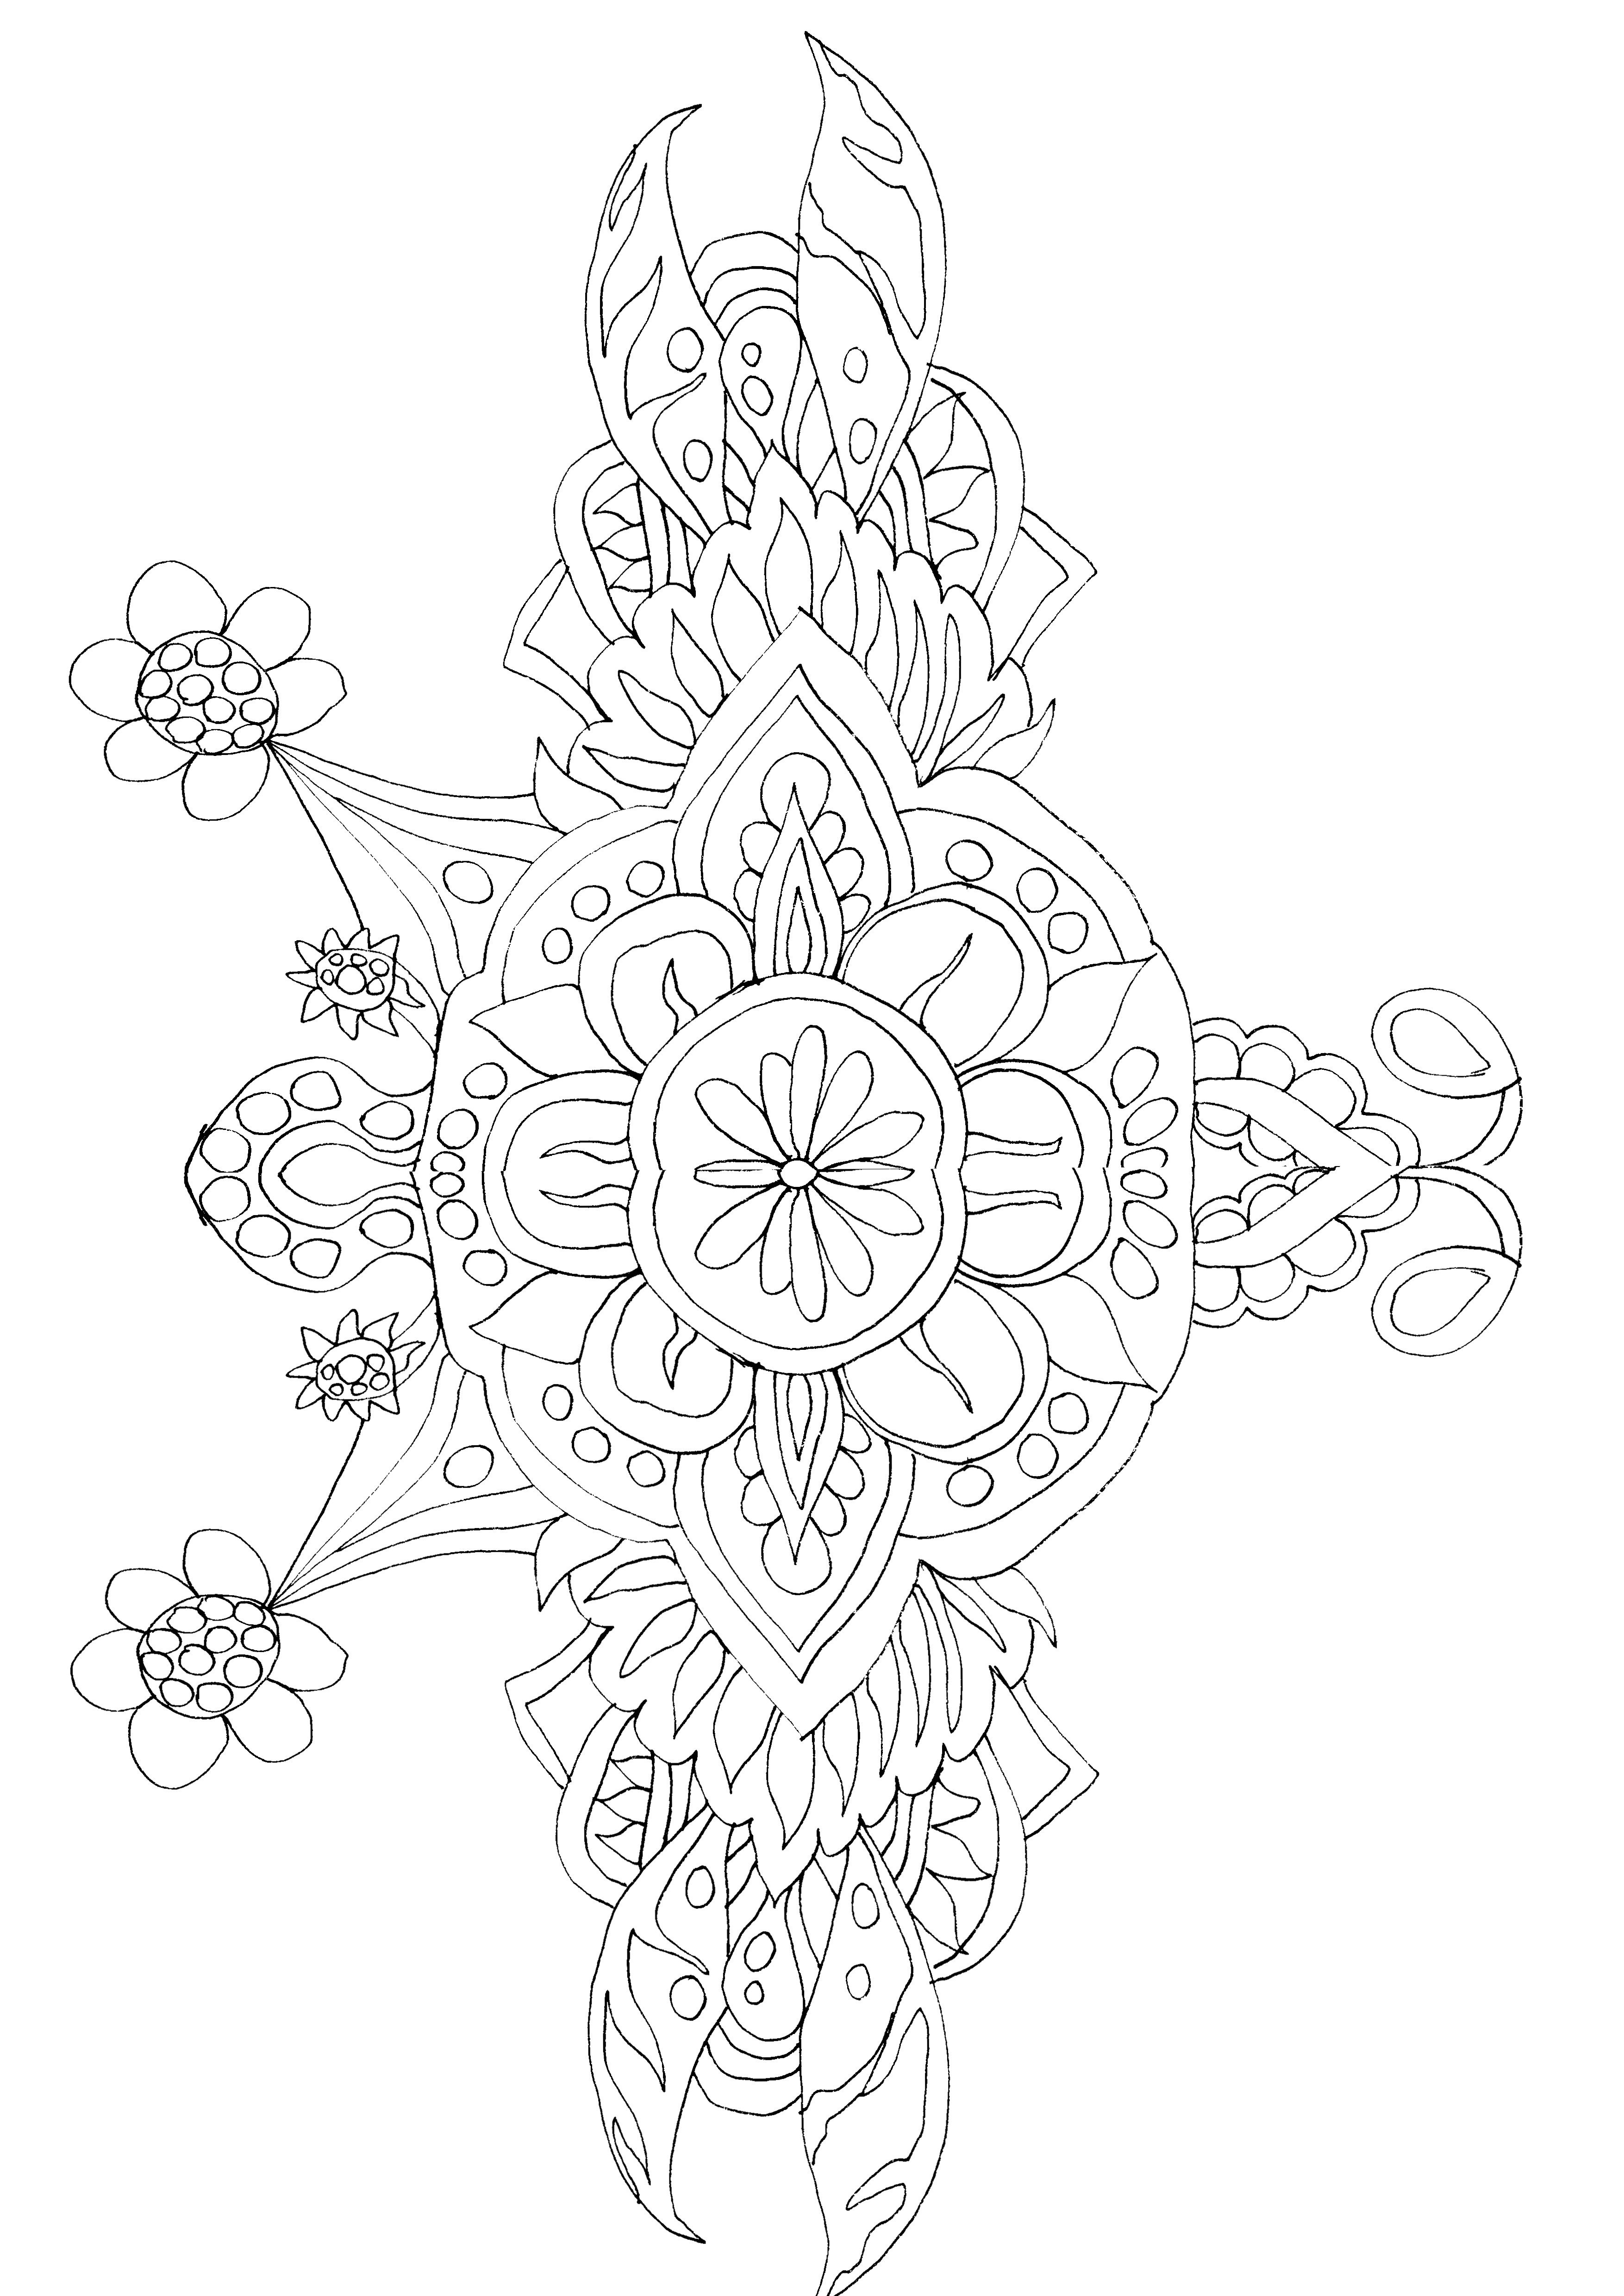 Free Coloring Book Page – 0236